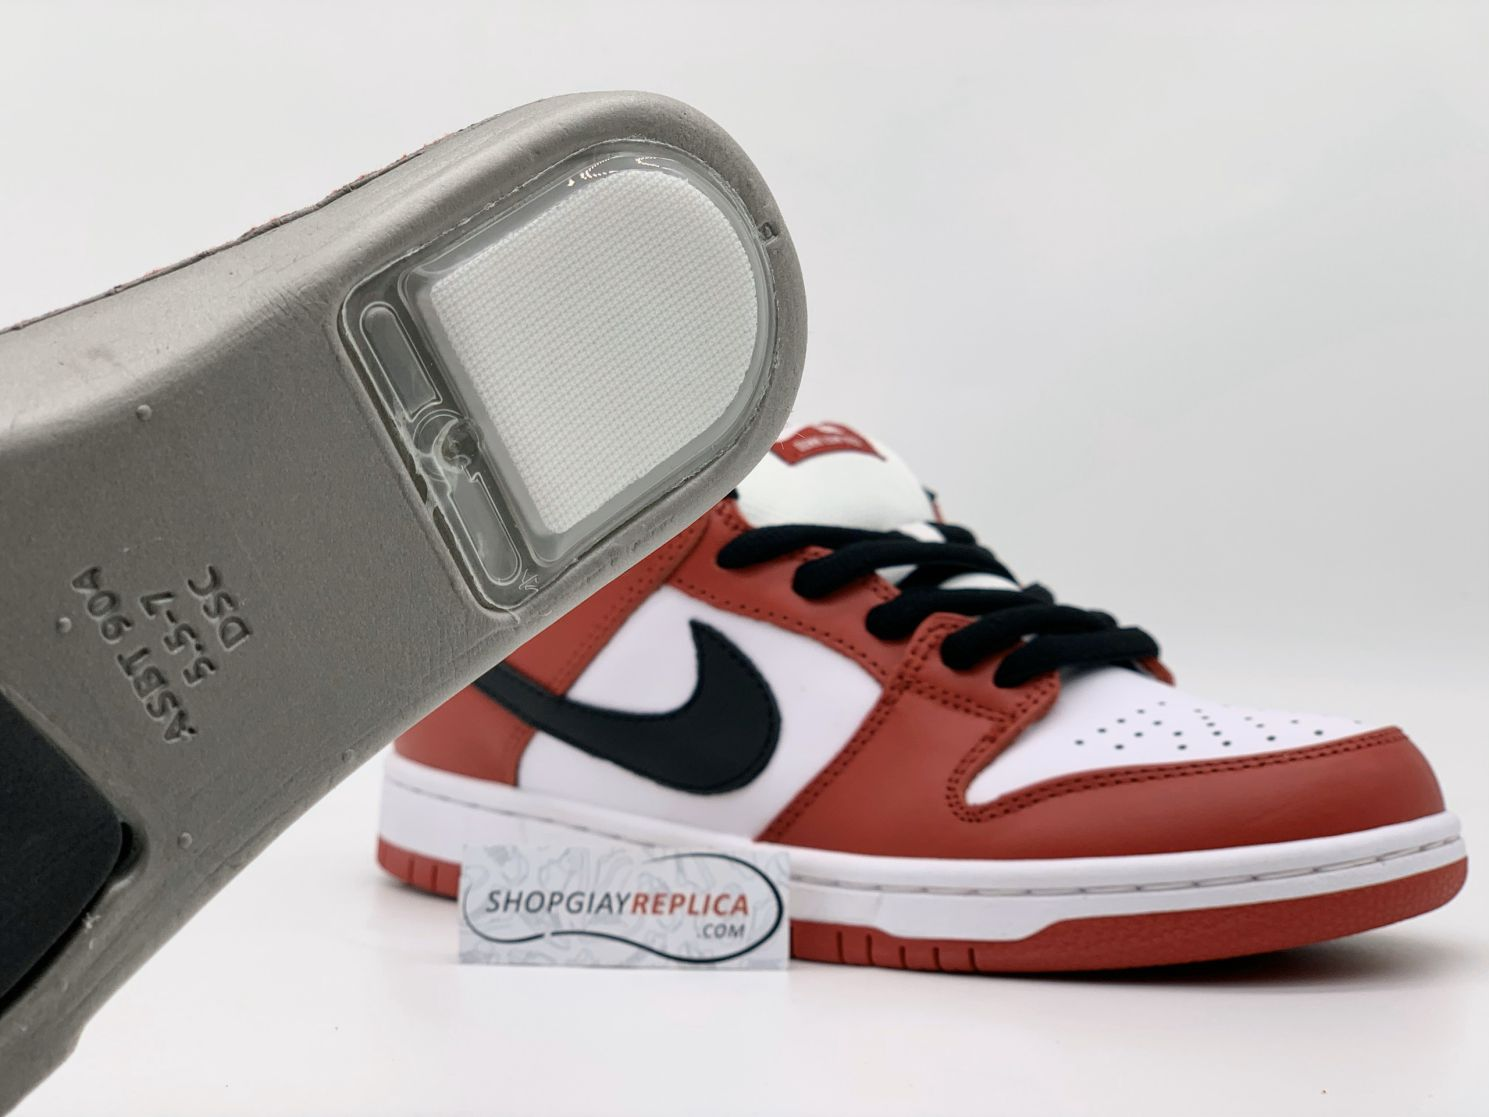 Nike SB Dunk Low J-Pack Chicago rep